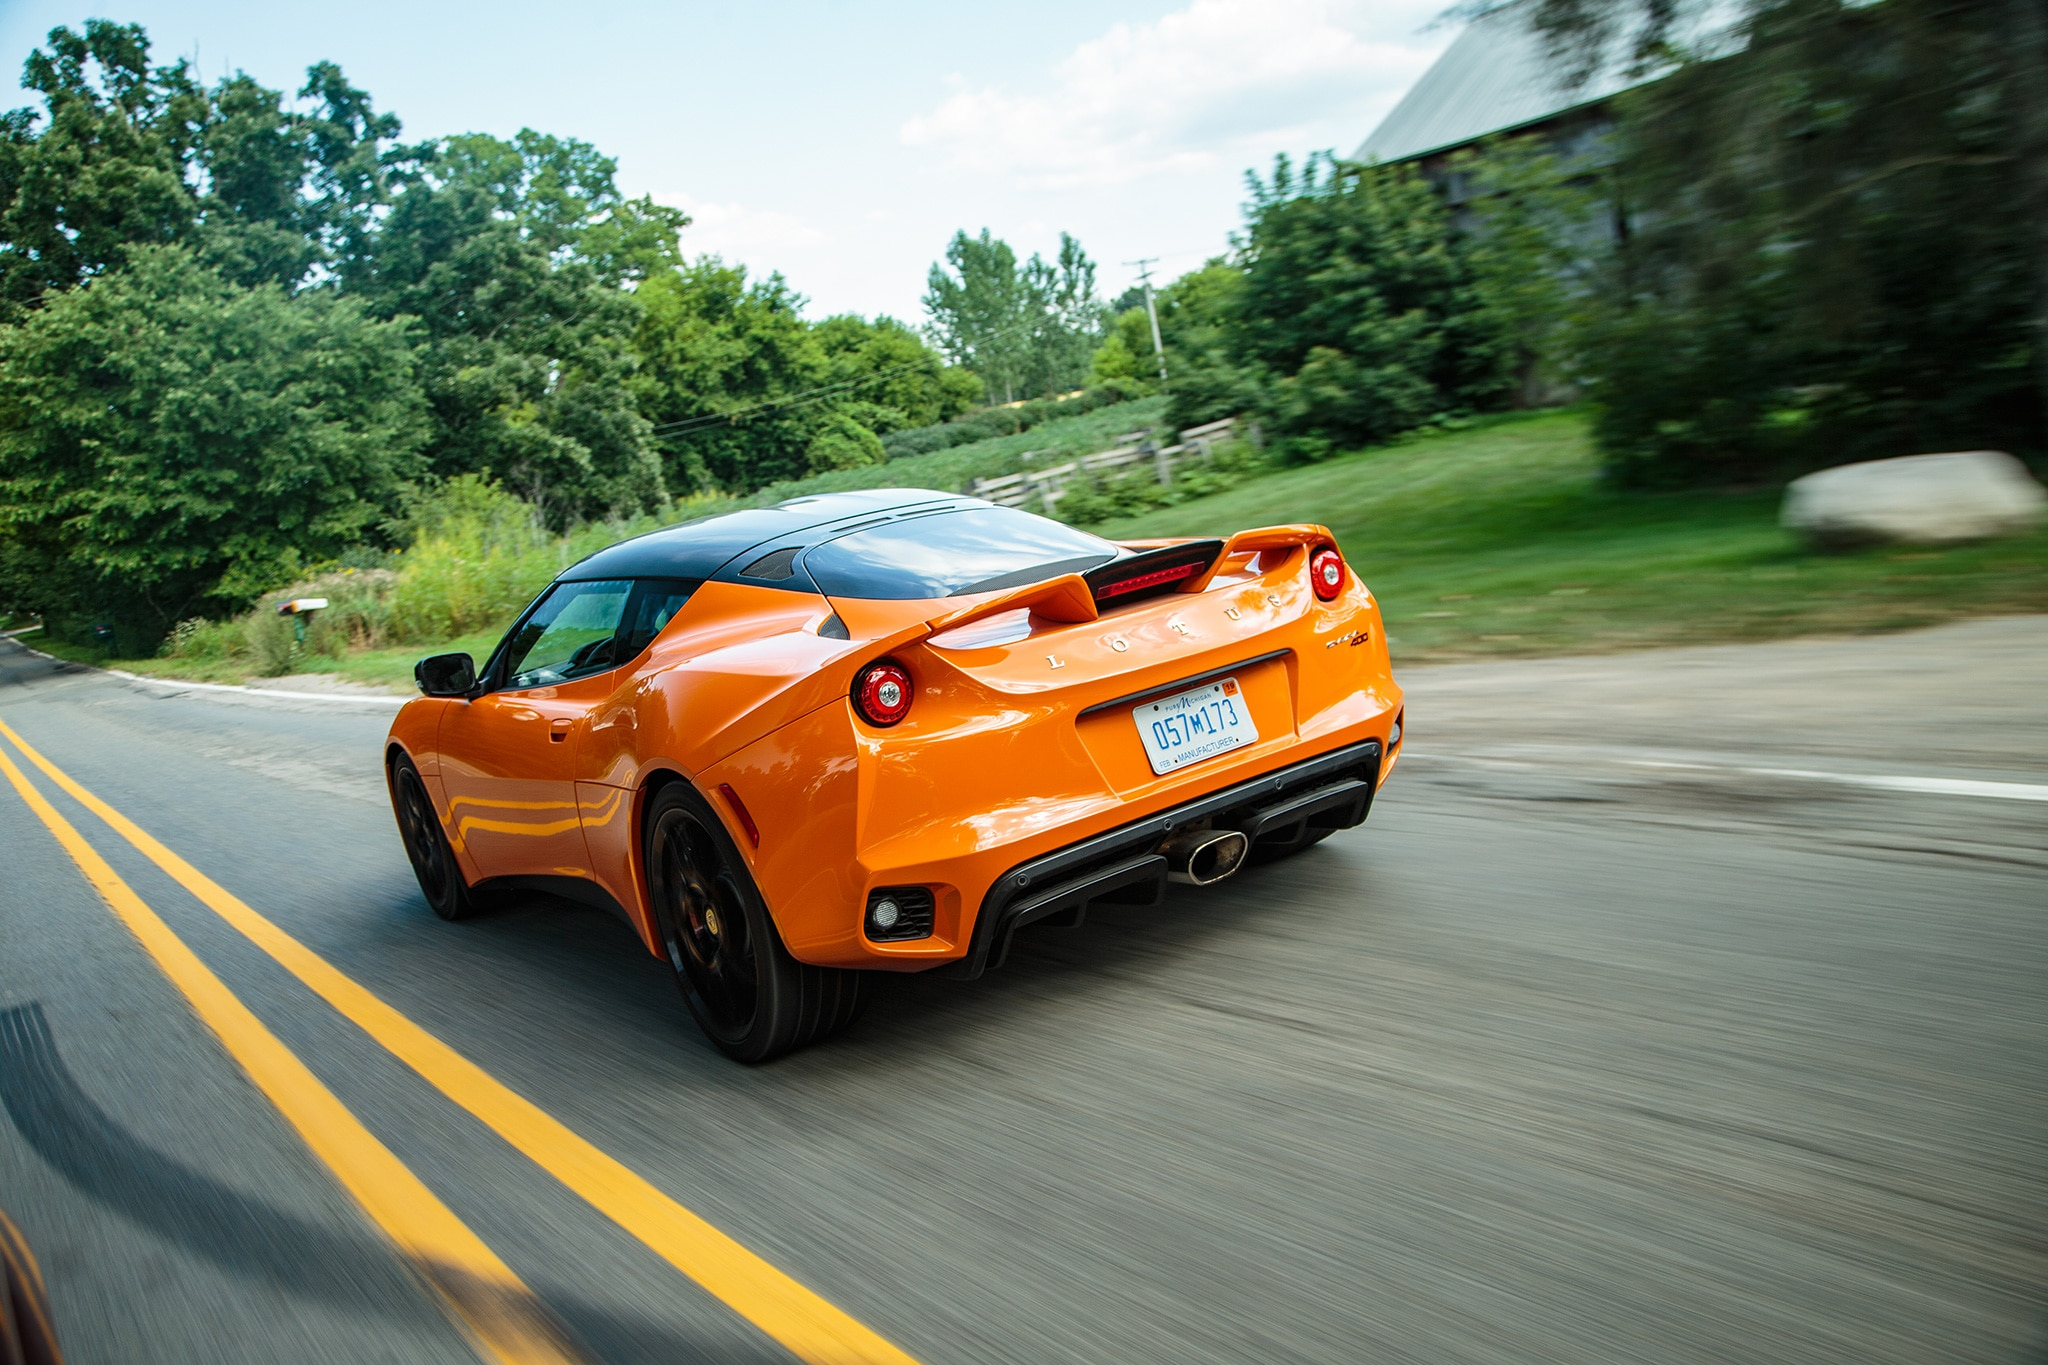 2017 Lotus Evora 400 Rear Three Quarter In Motion 05